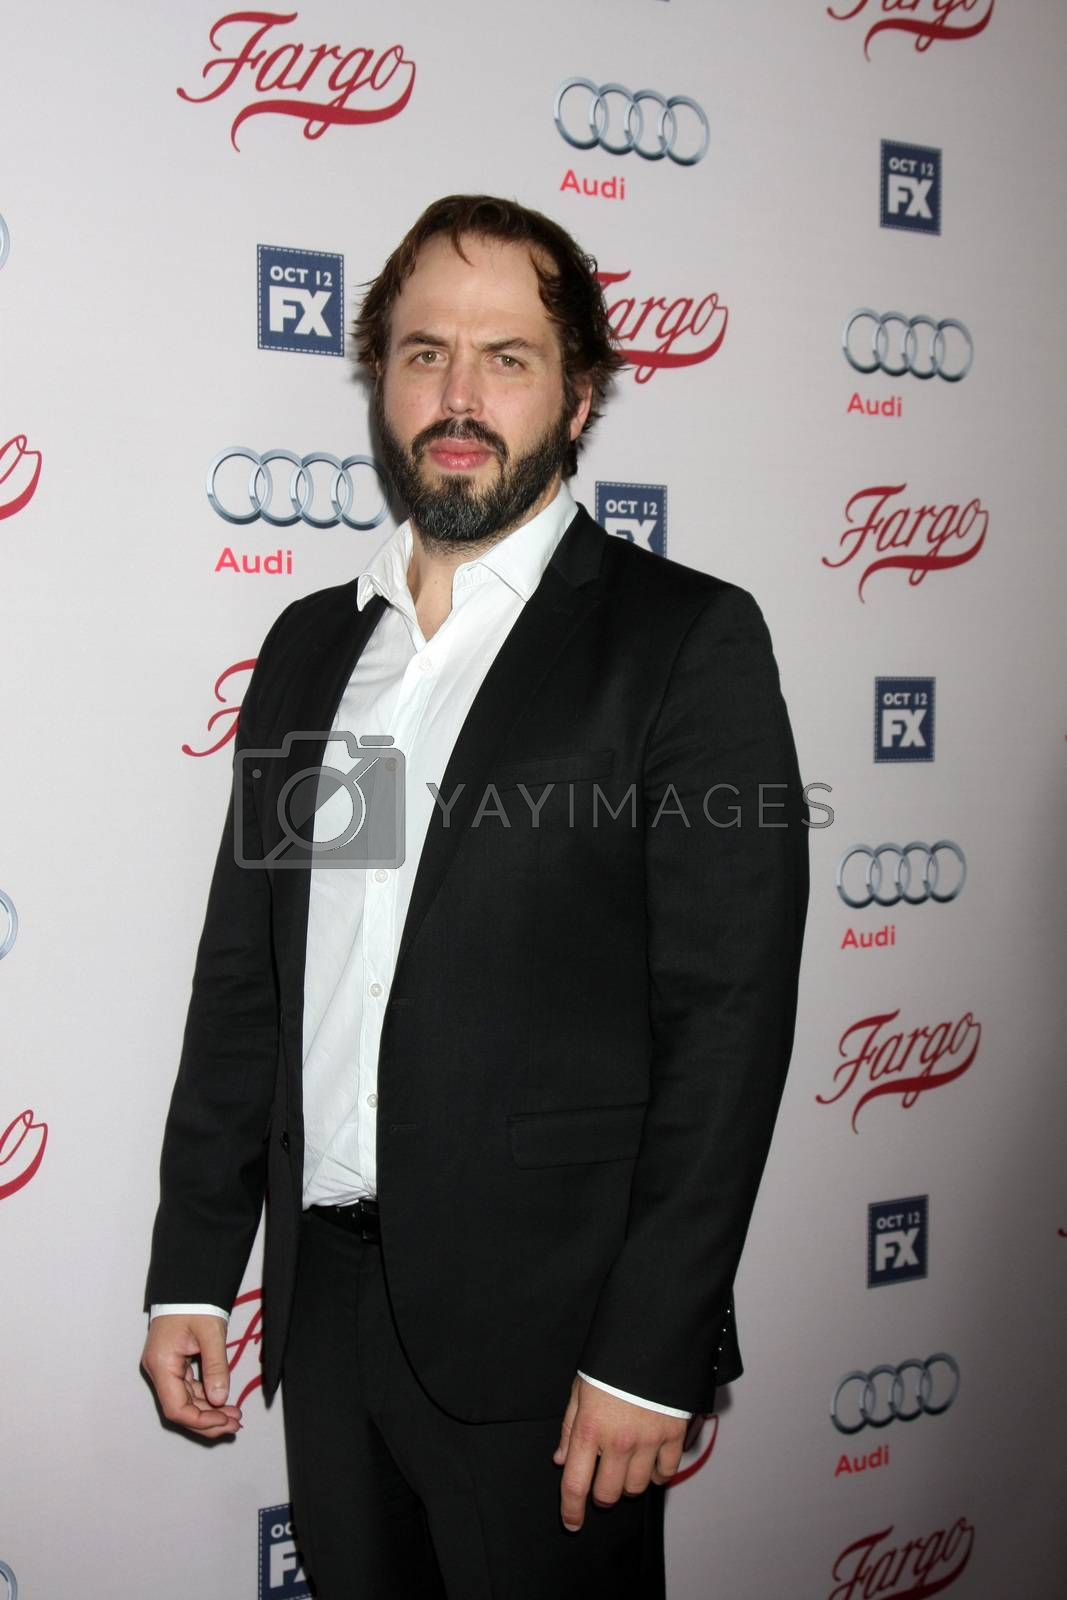 """Angus Sampson at the """"Fargo"""" Season 2 Premiere Screening, ArcLight, Hollywood, CA 10-07-15/ImageCollect by ImageCollect"""